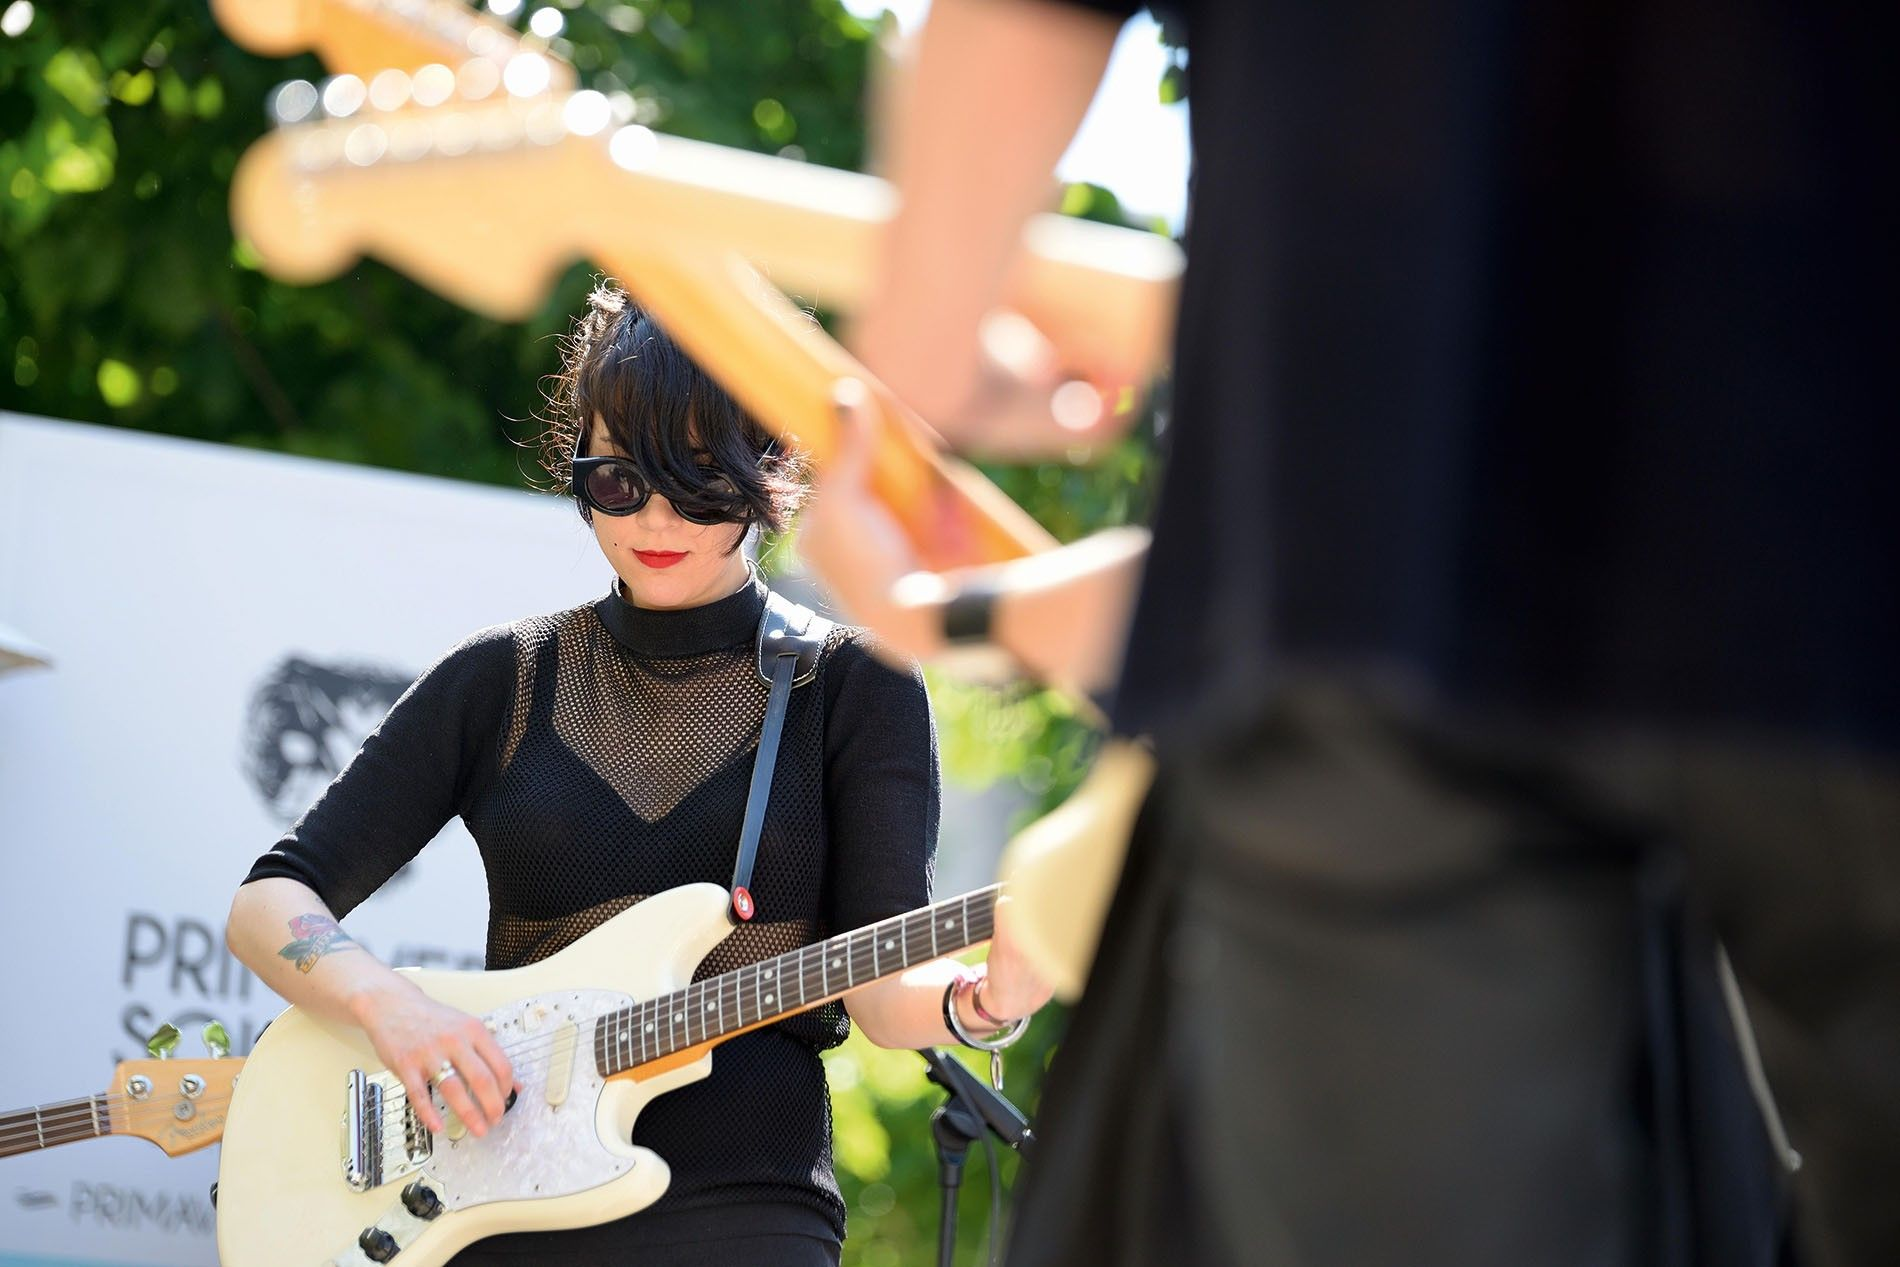 Dum Dum Girls, a rock band from Los Angeles, play at Primavera Sound 2014 festival.